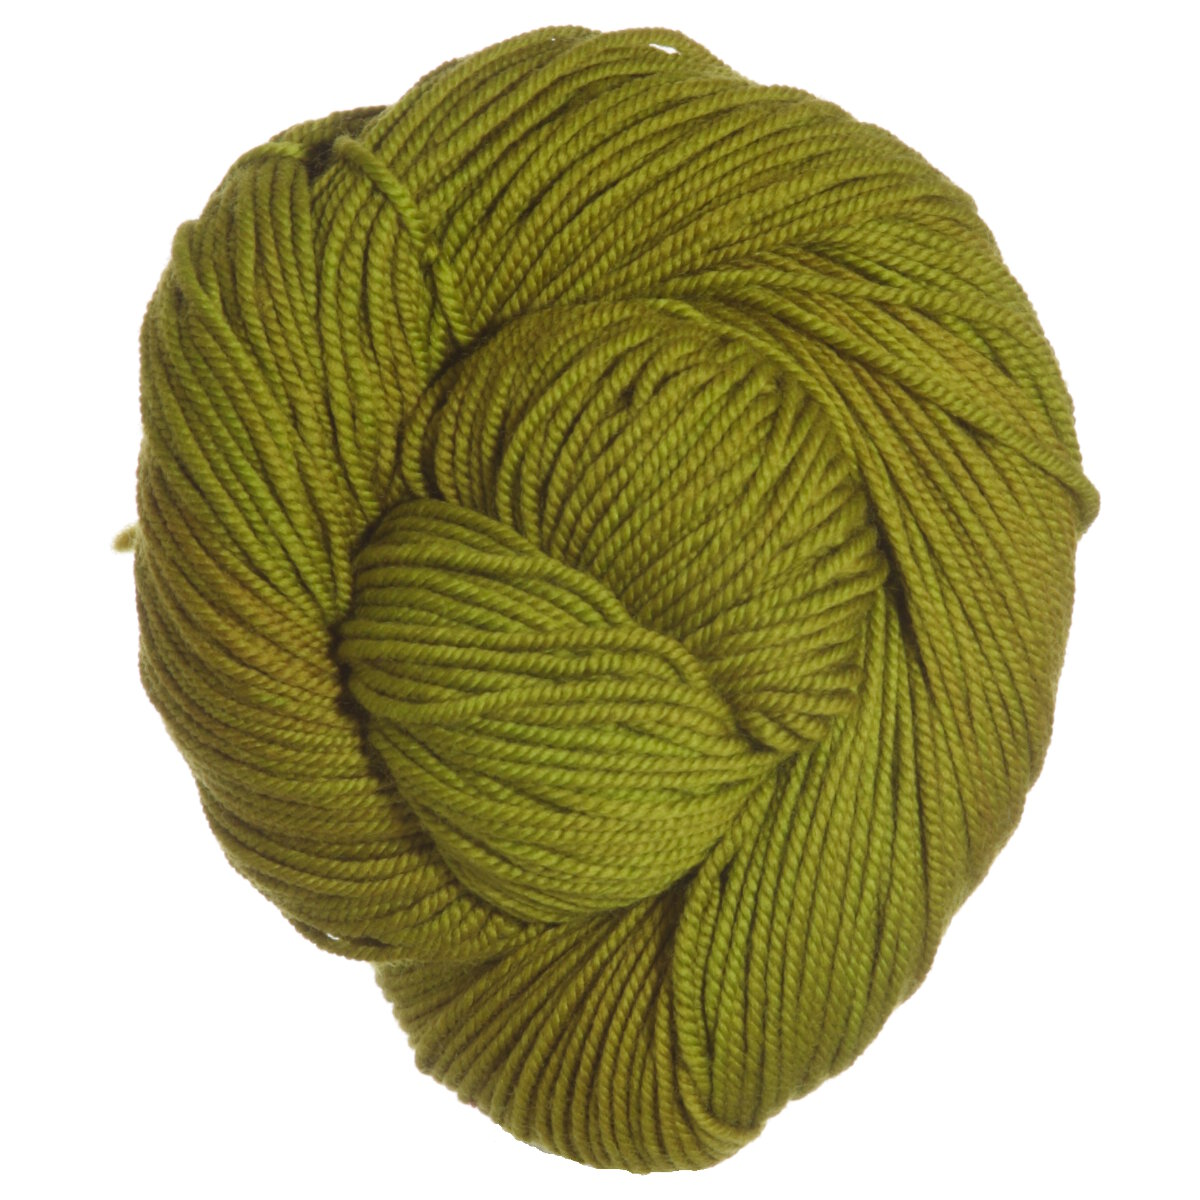 Ella Rae Lace Merino Worsted Yarn at Jimmy Beans Wool